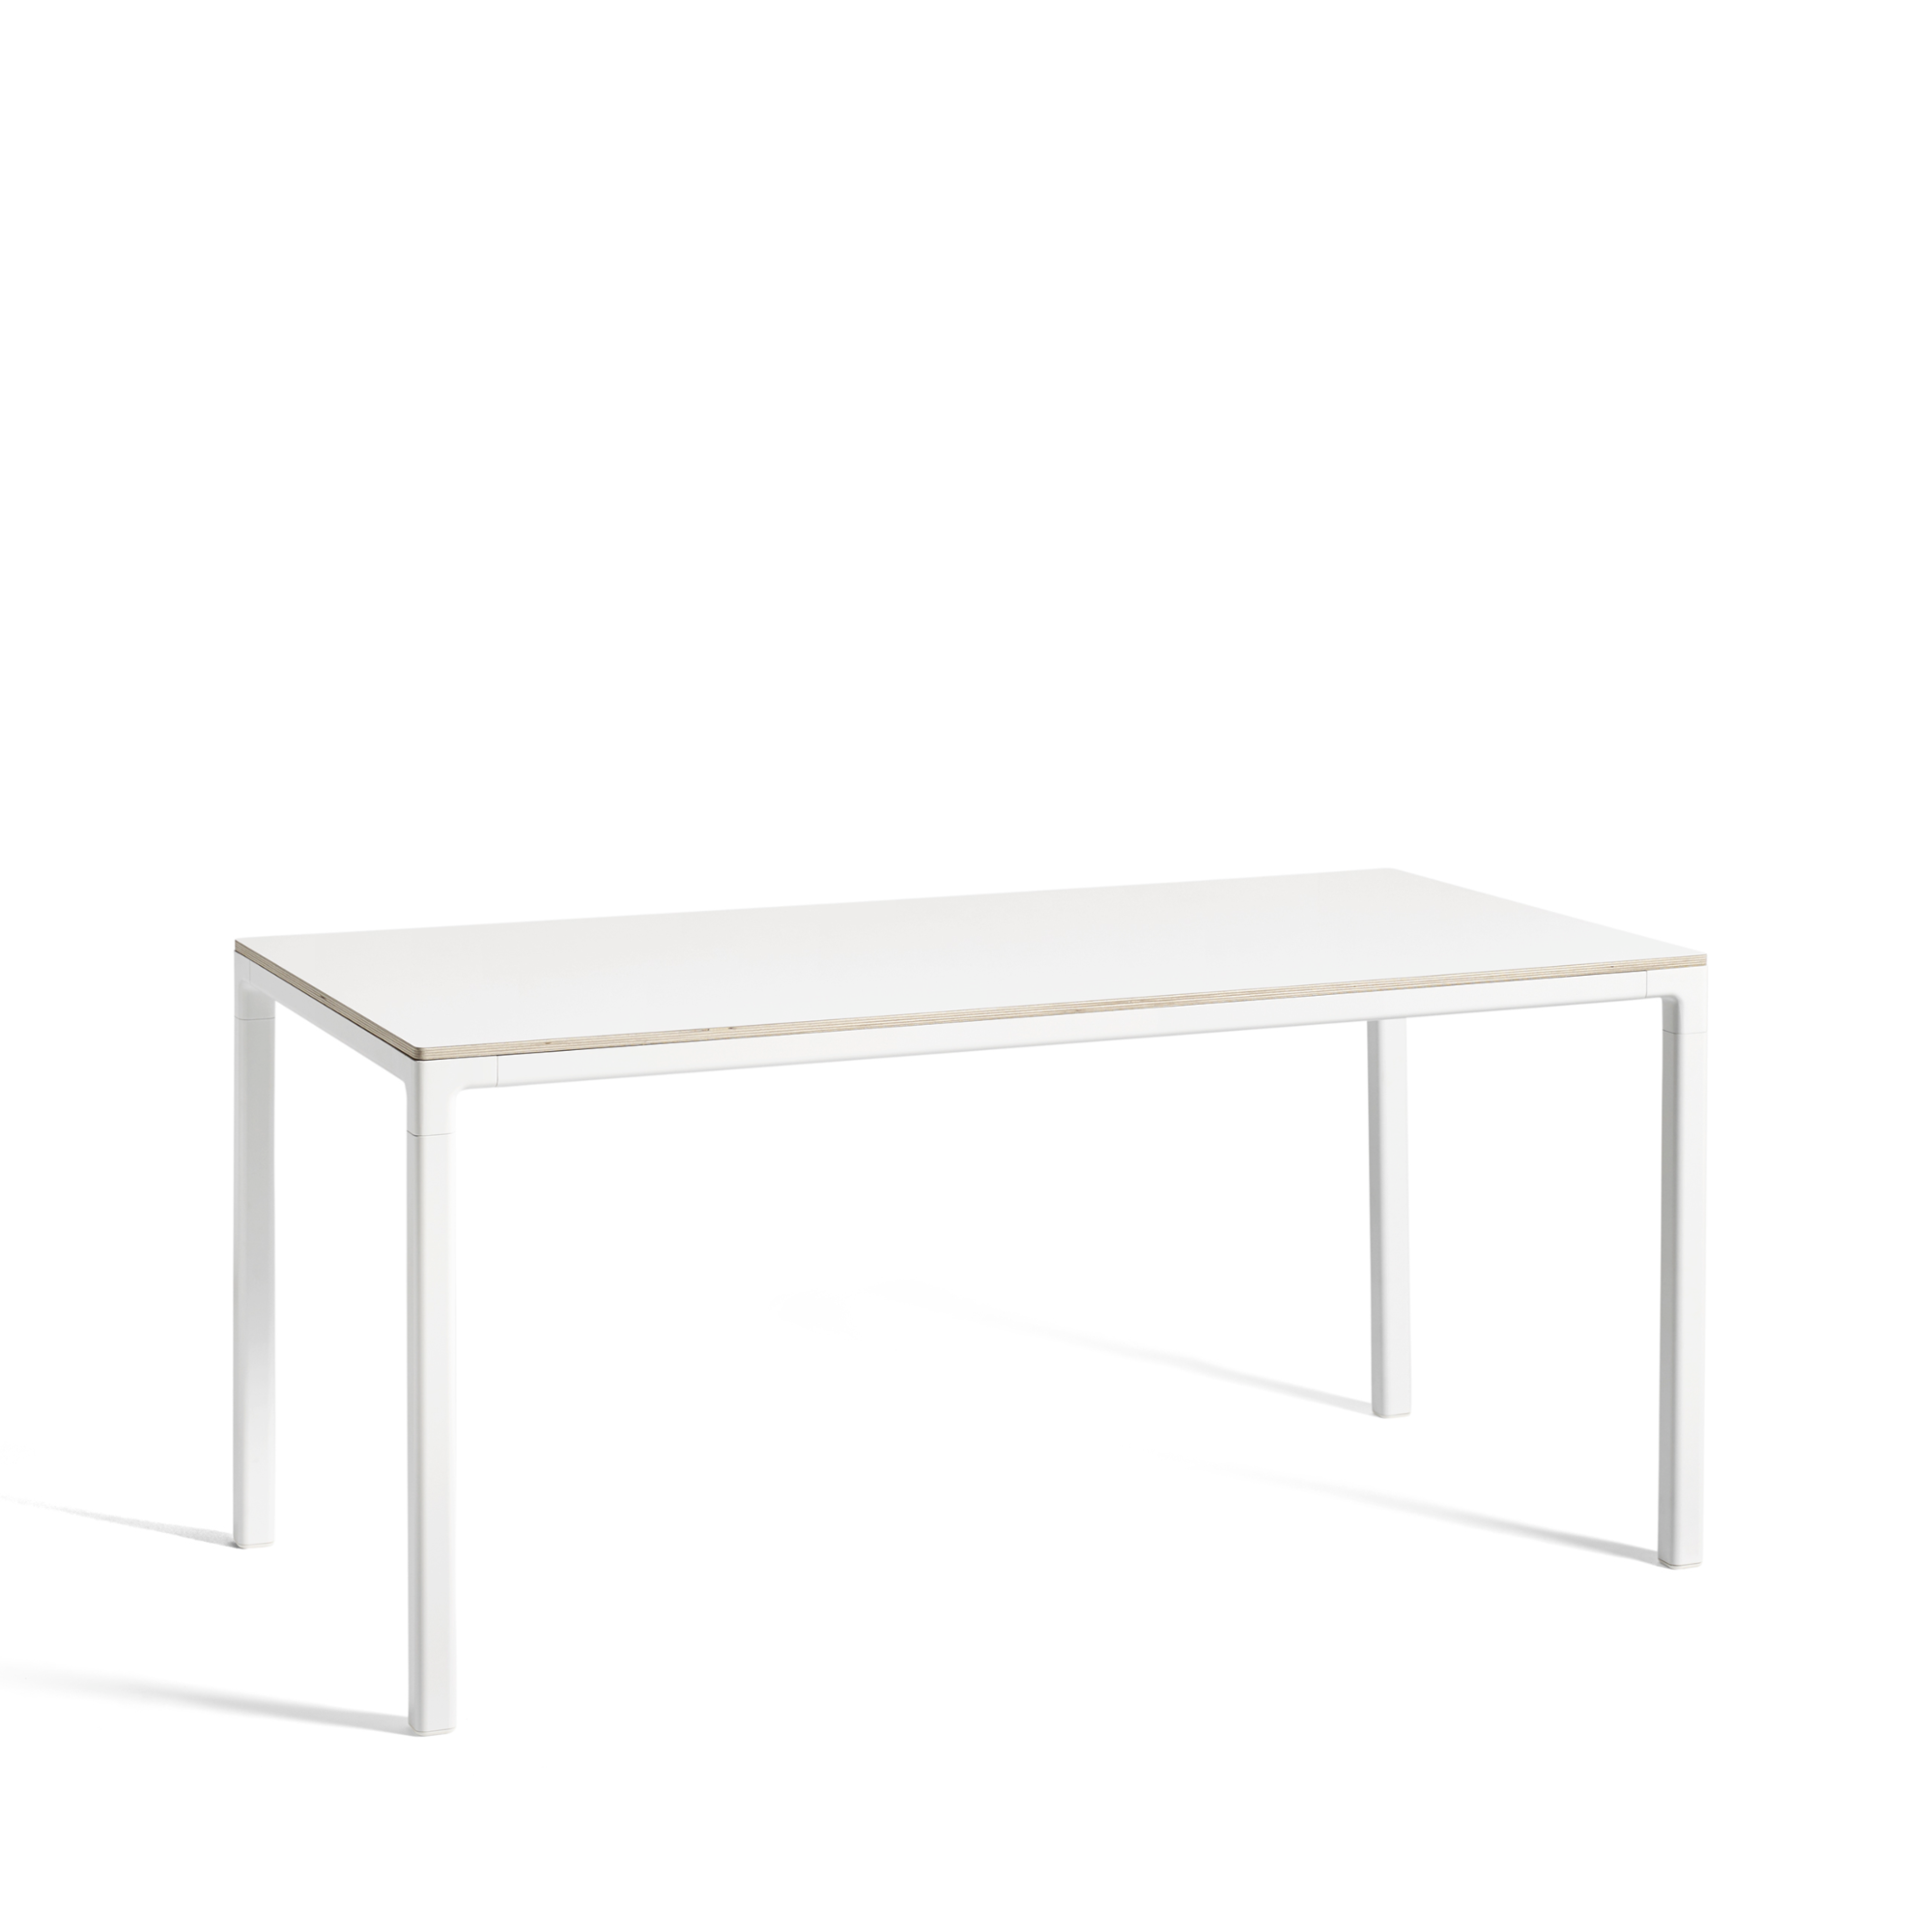 HAY Office T12 Desk 1600mm - White